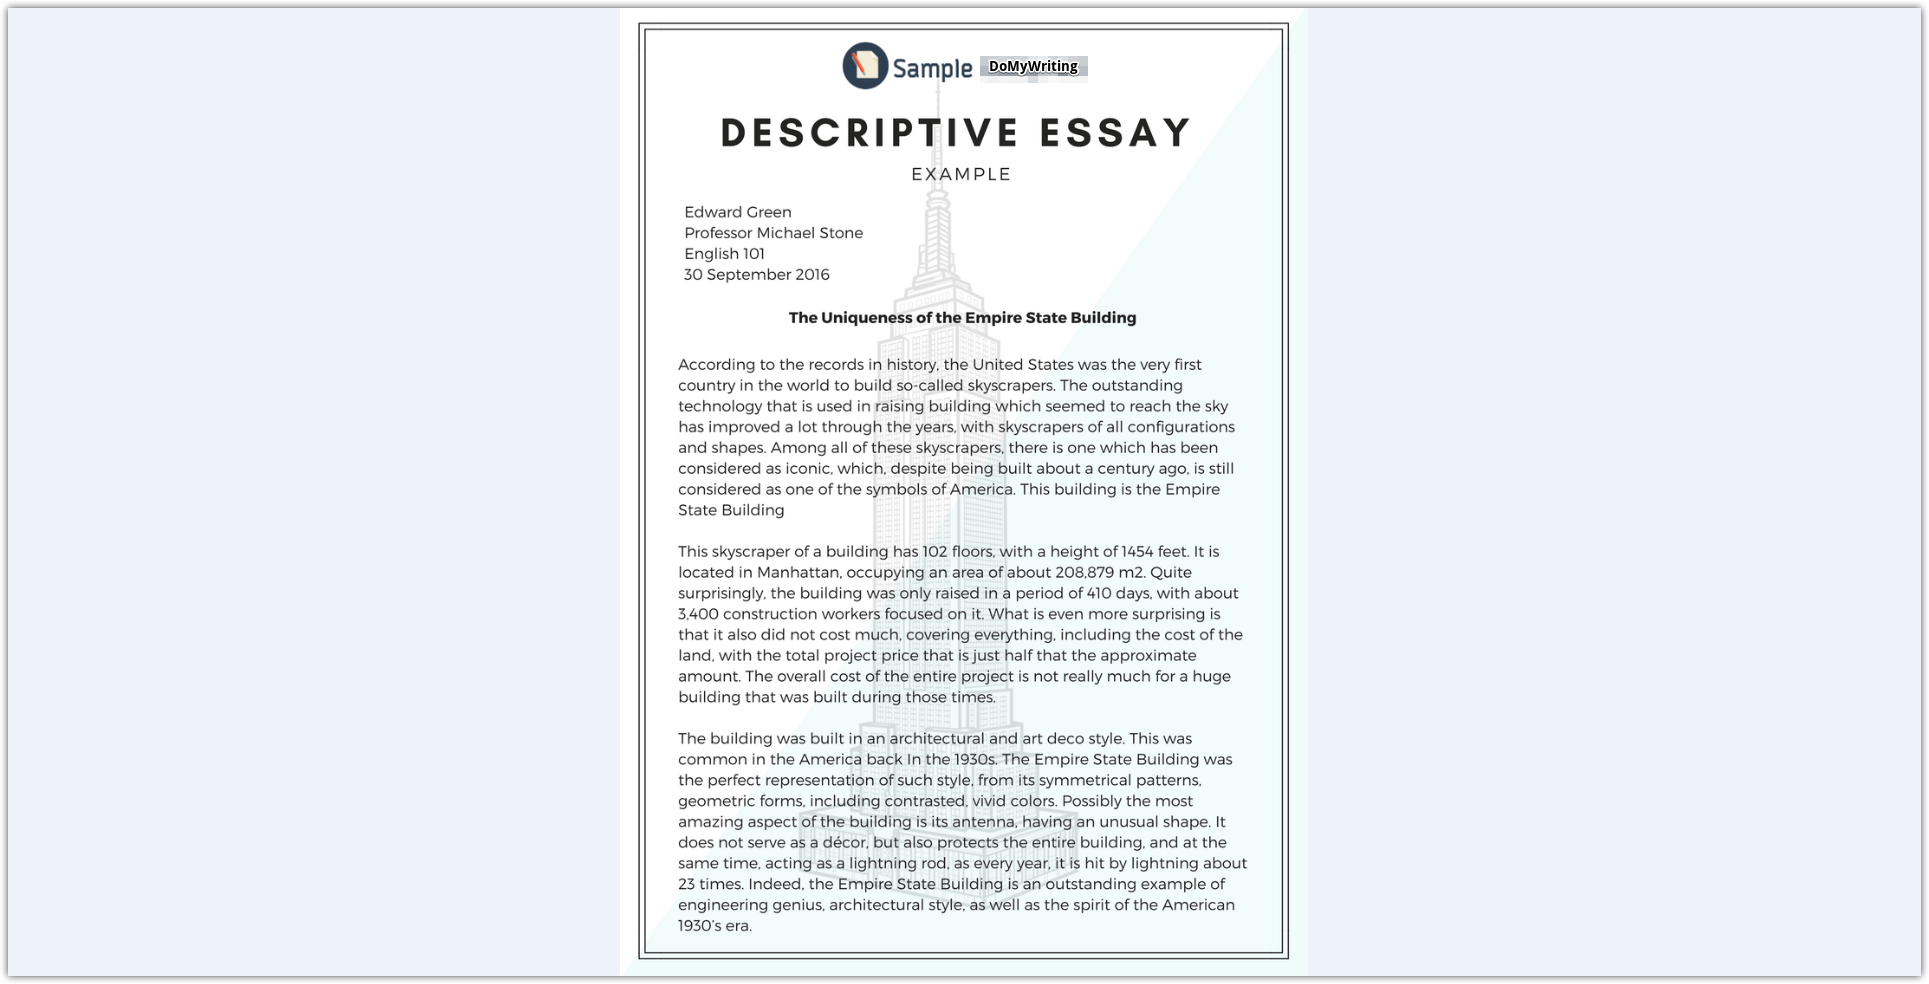 005 Essay Example Descriptive Impressive Writing Definition Wikipedia Format Ppt Full